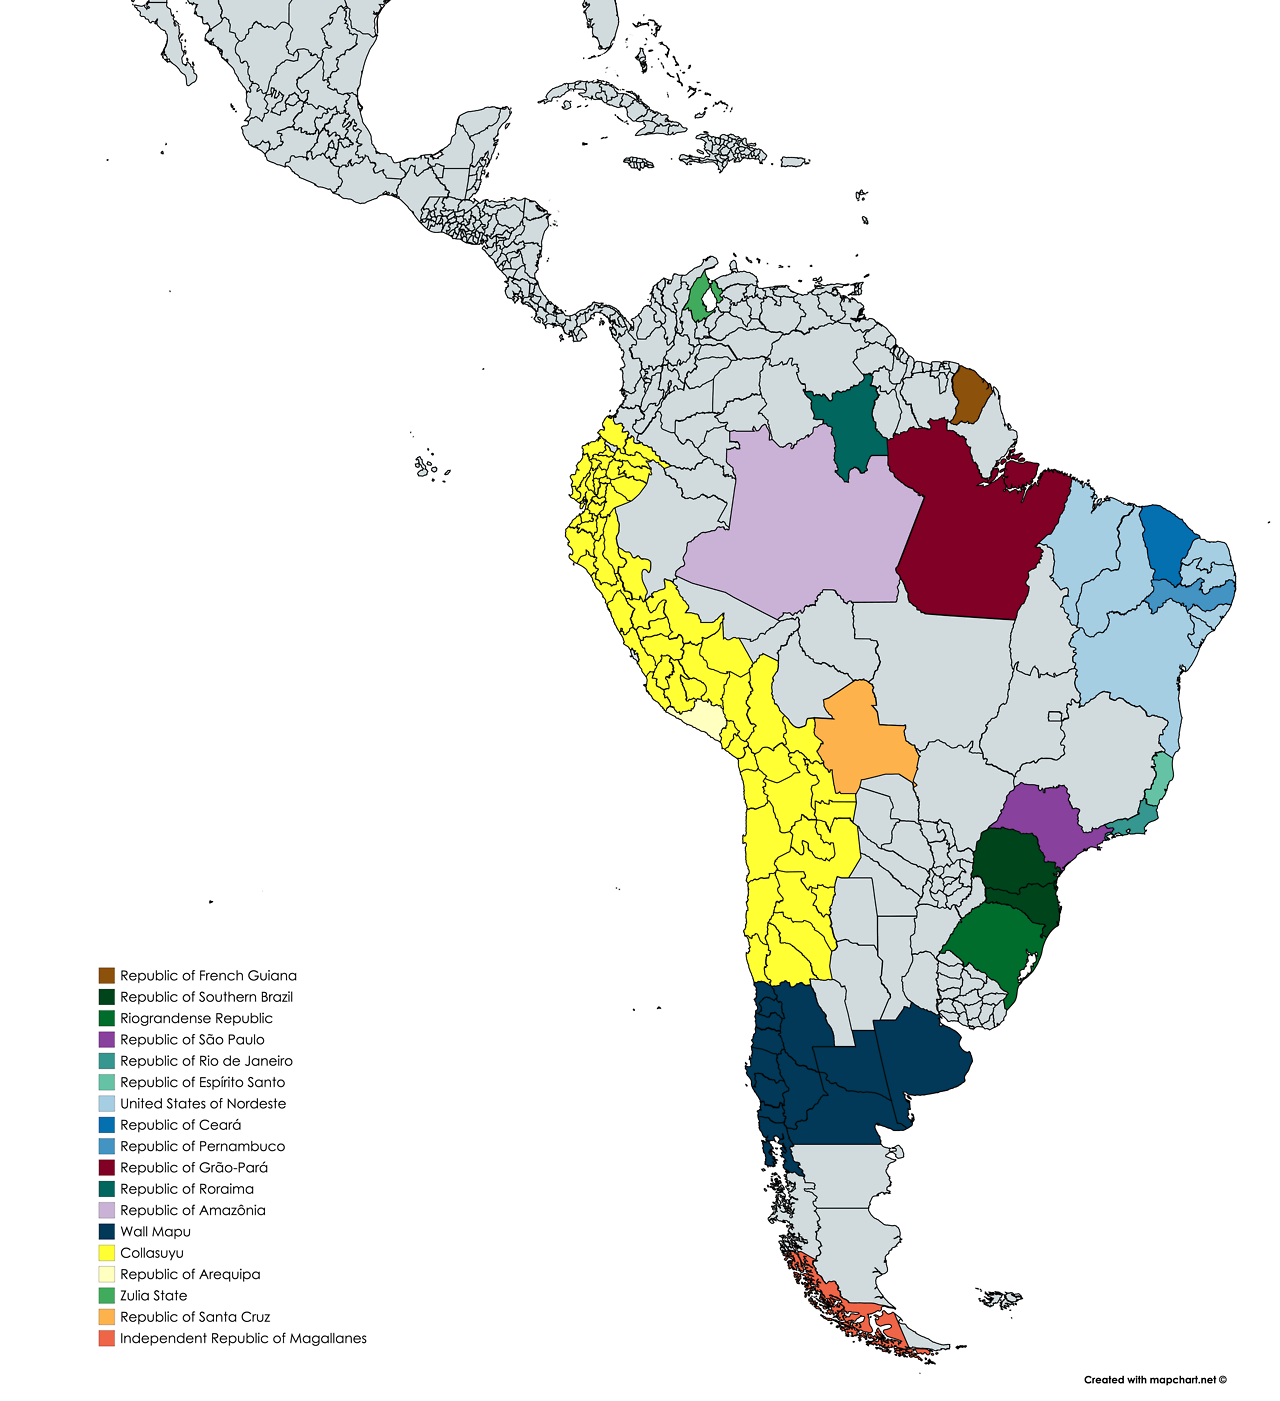 Current separatist movements in south america country names current separatist movements in south america country names 6600x7224 gumiabroncs Images